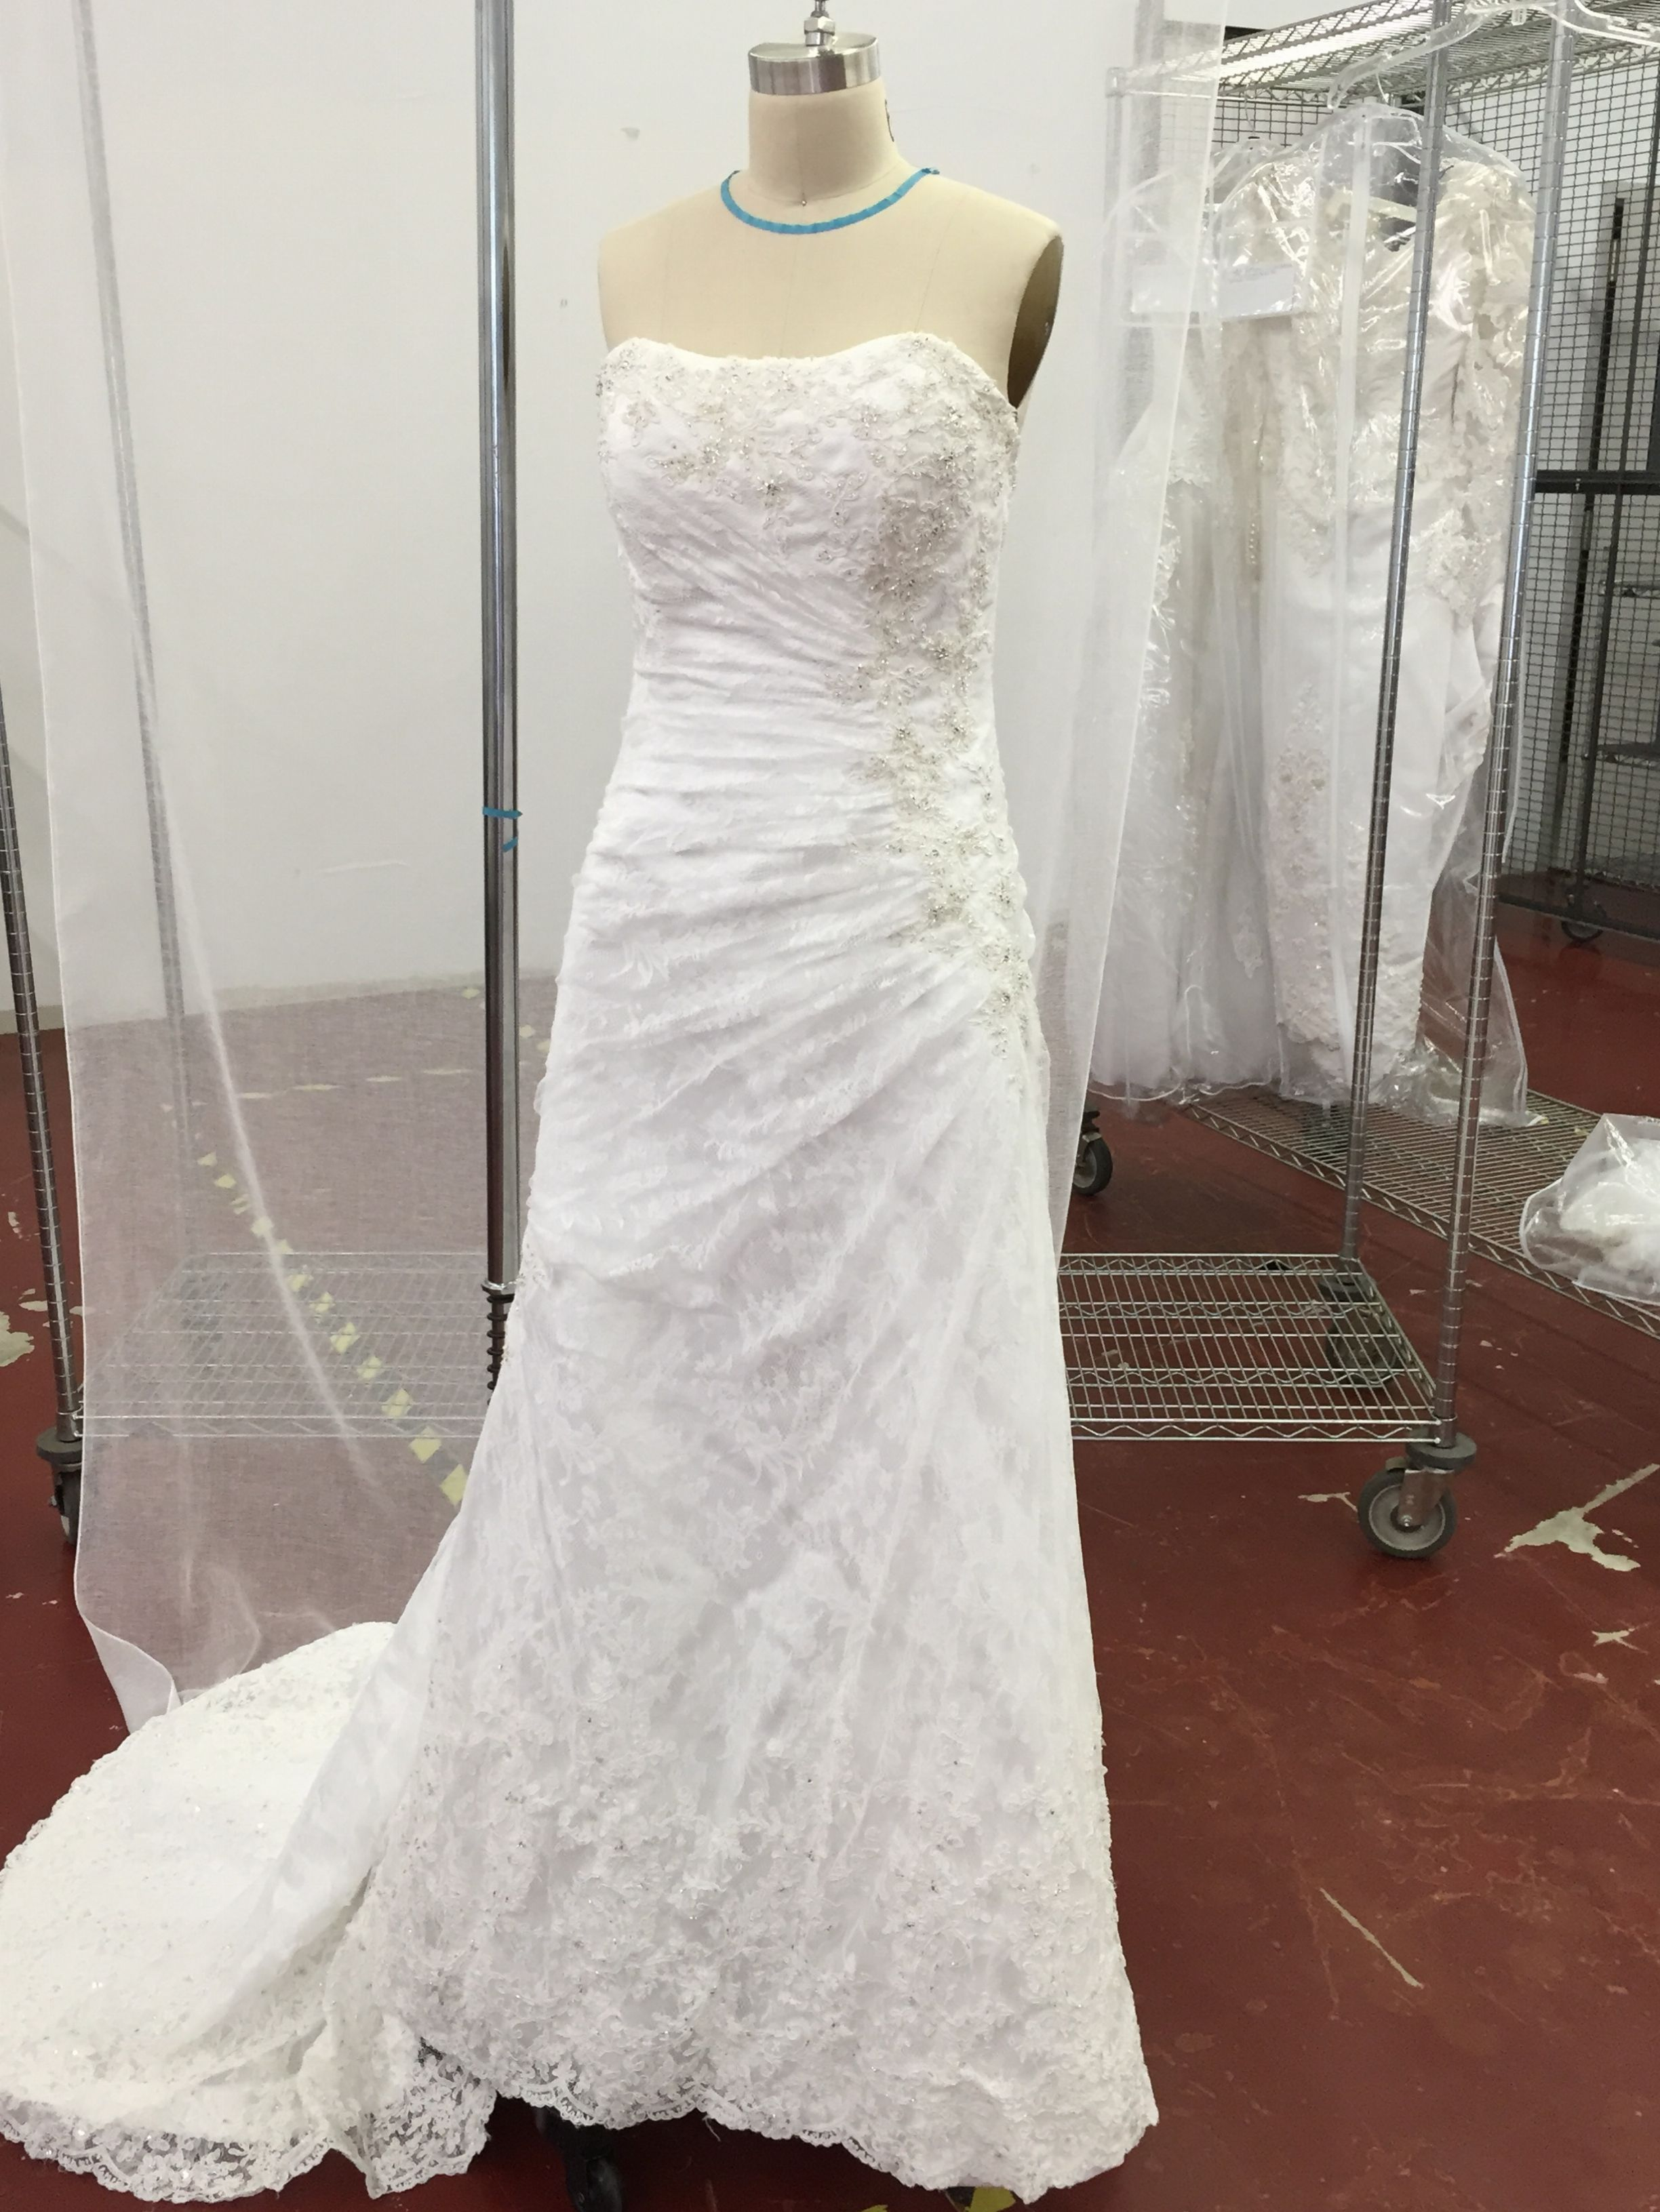 Wedding dress consignment shops near me  Maggie Sottero wedding dress size  beautiful condition Visit